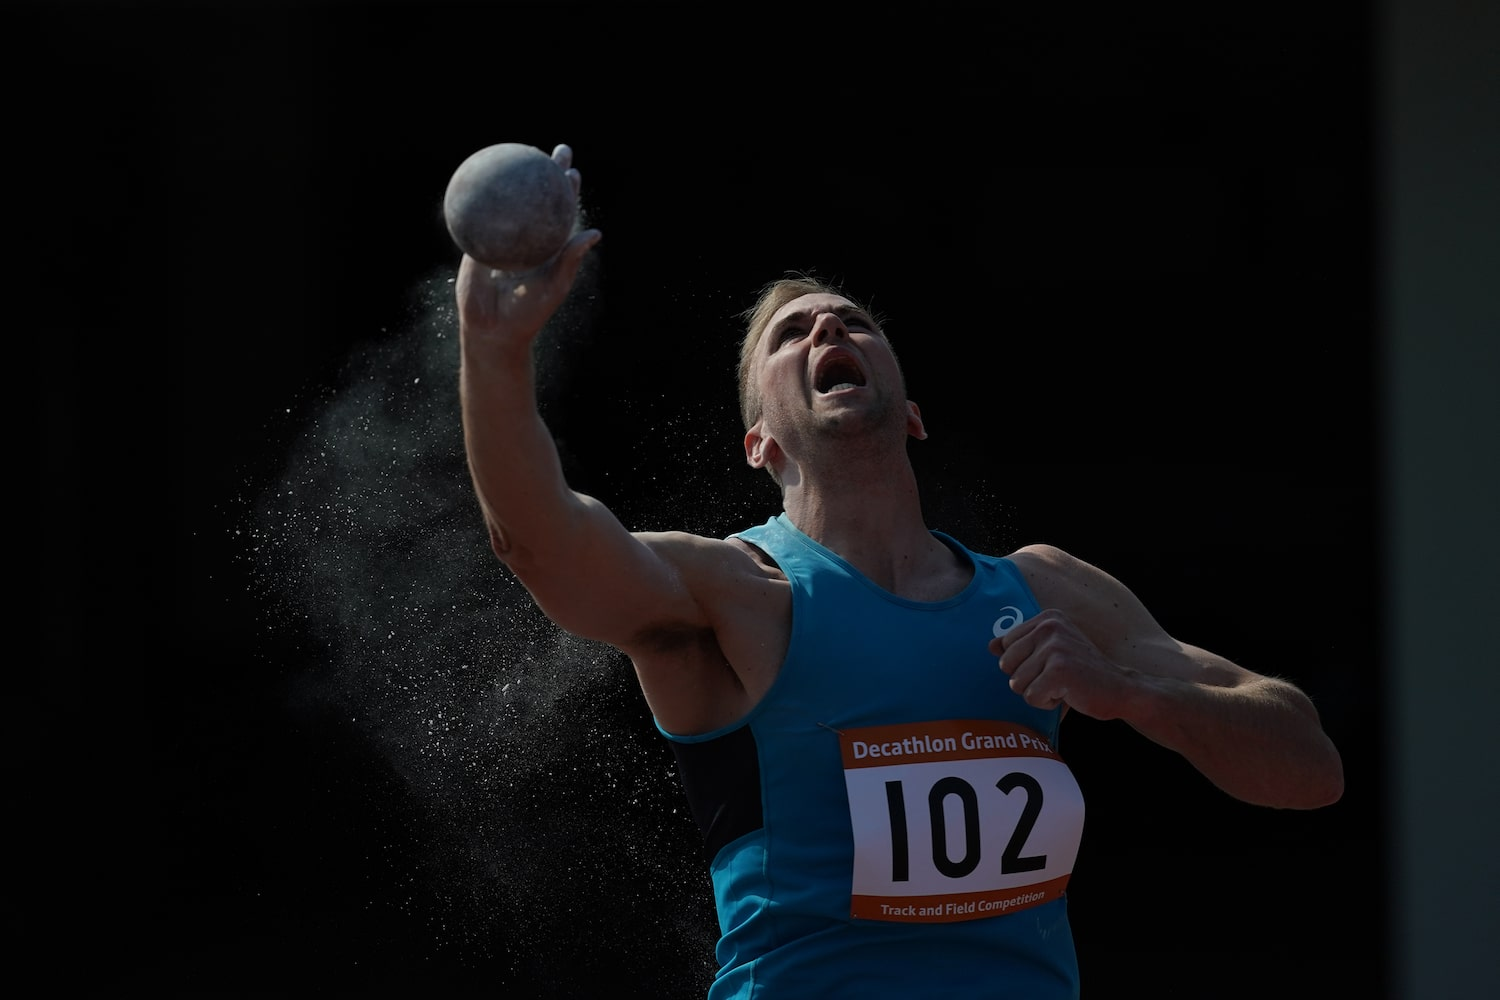 shotput-runner-triumphant-alpha-9